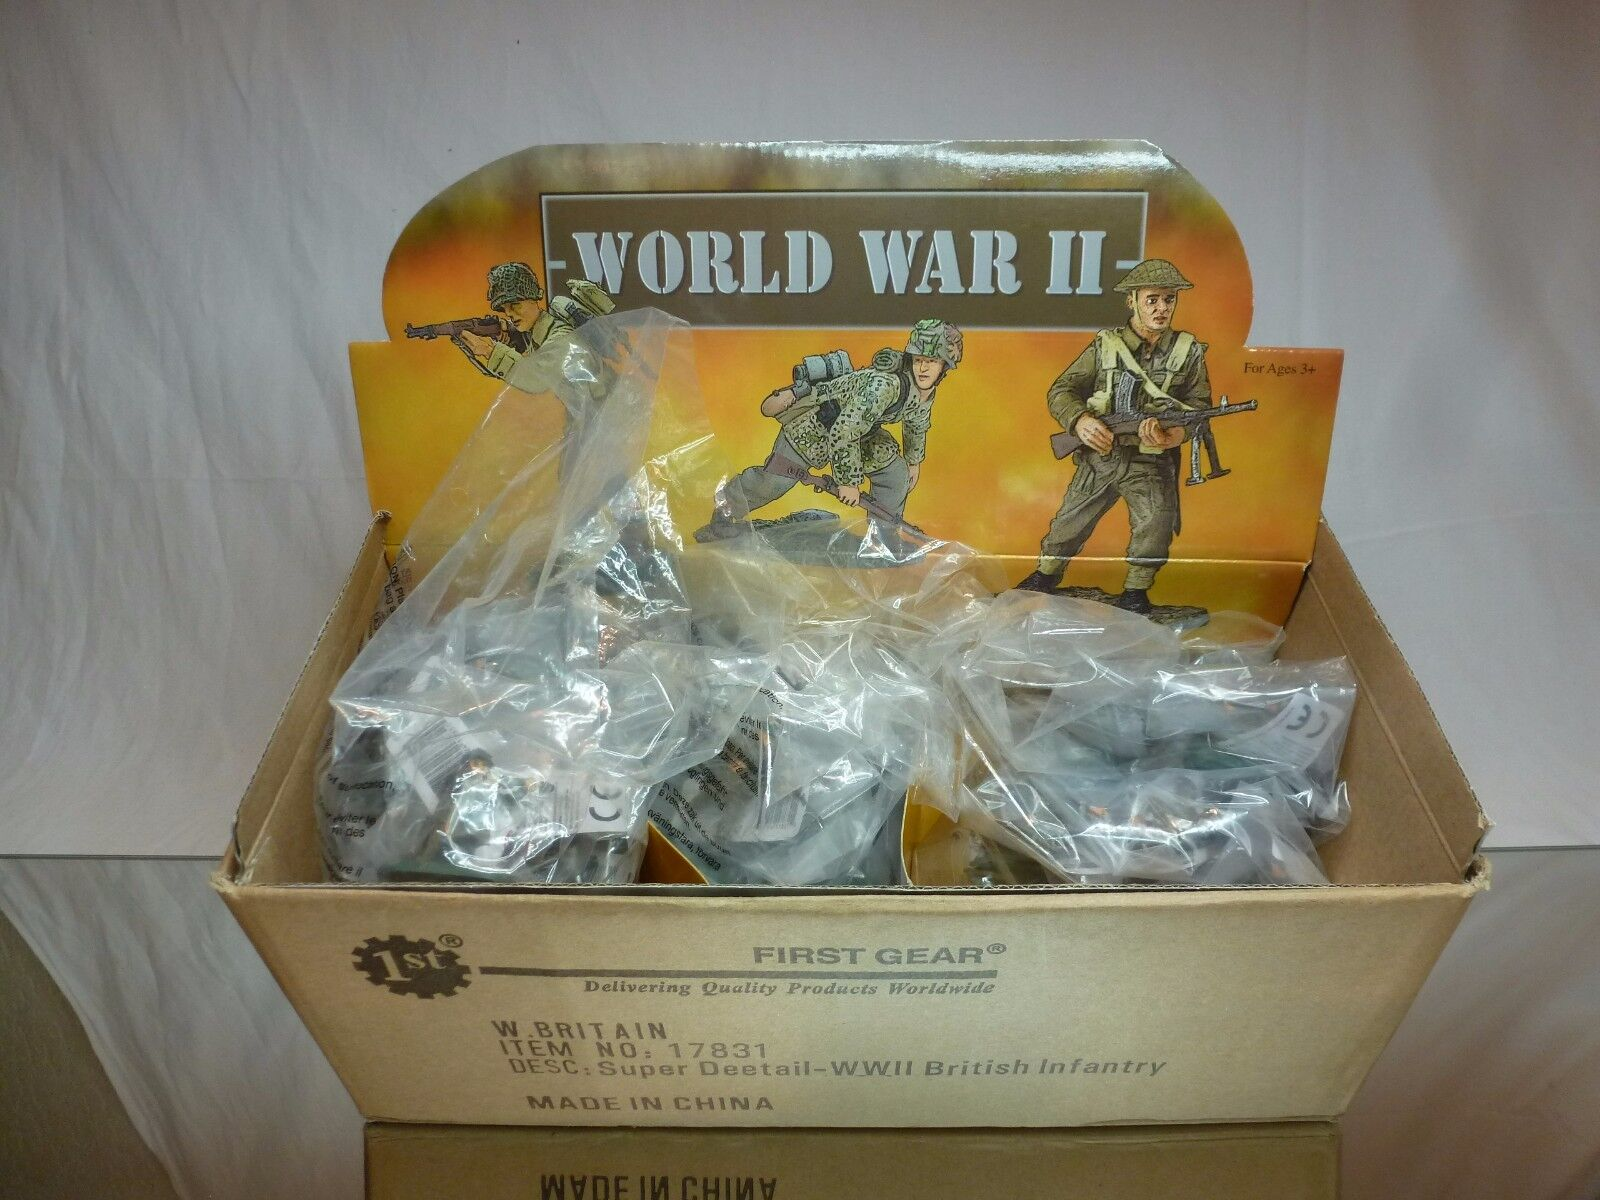 BRITAINS 17831 FIRST GEAR WWII BRITISH INFANTERY 48pcs - ARMY - EXCELLENT IN BOX